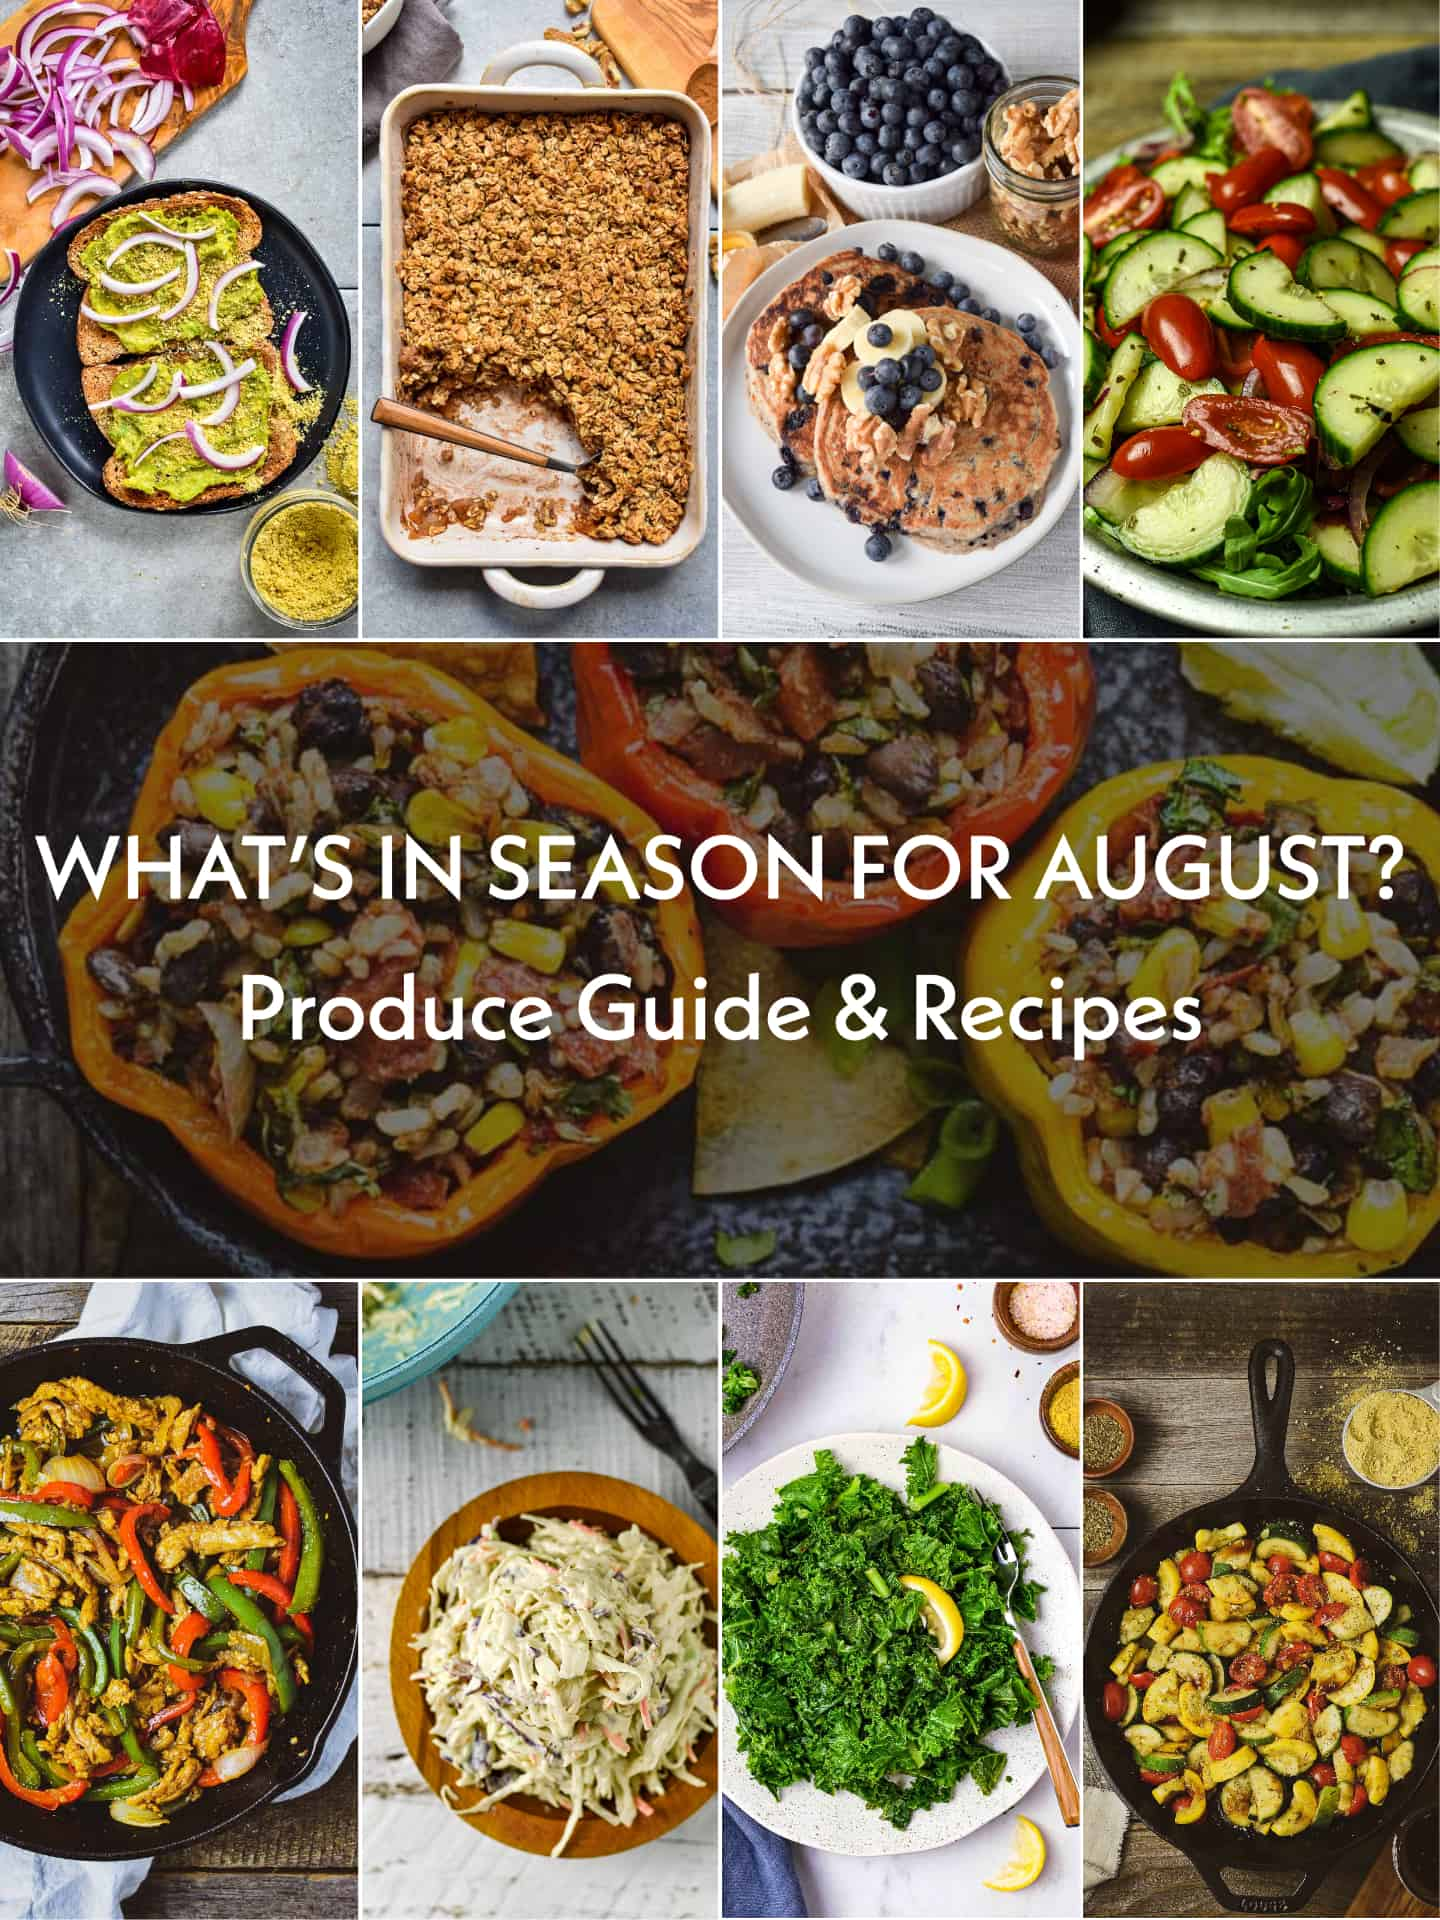 An informative guide and list of seasonal produce for the month of August. Easy vegan healthy recipes, preparation tips, and more that will get you through the rest of the summer.